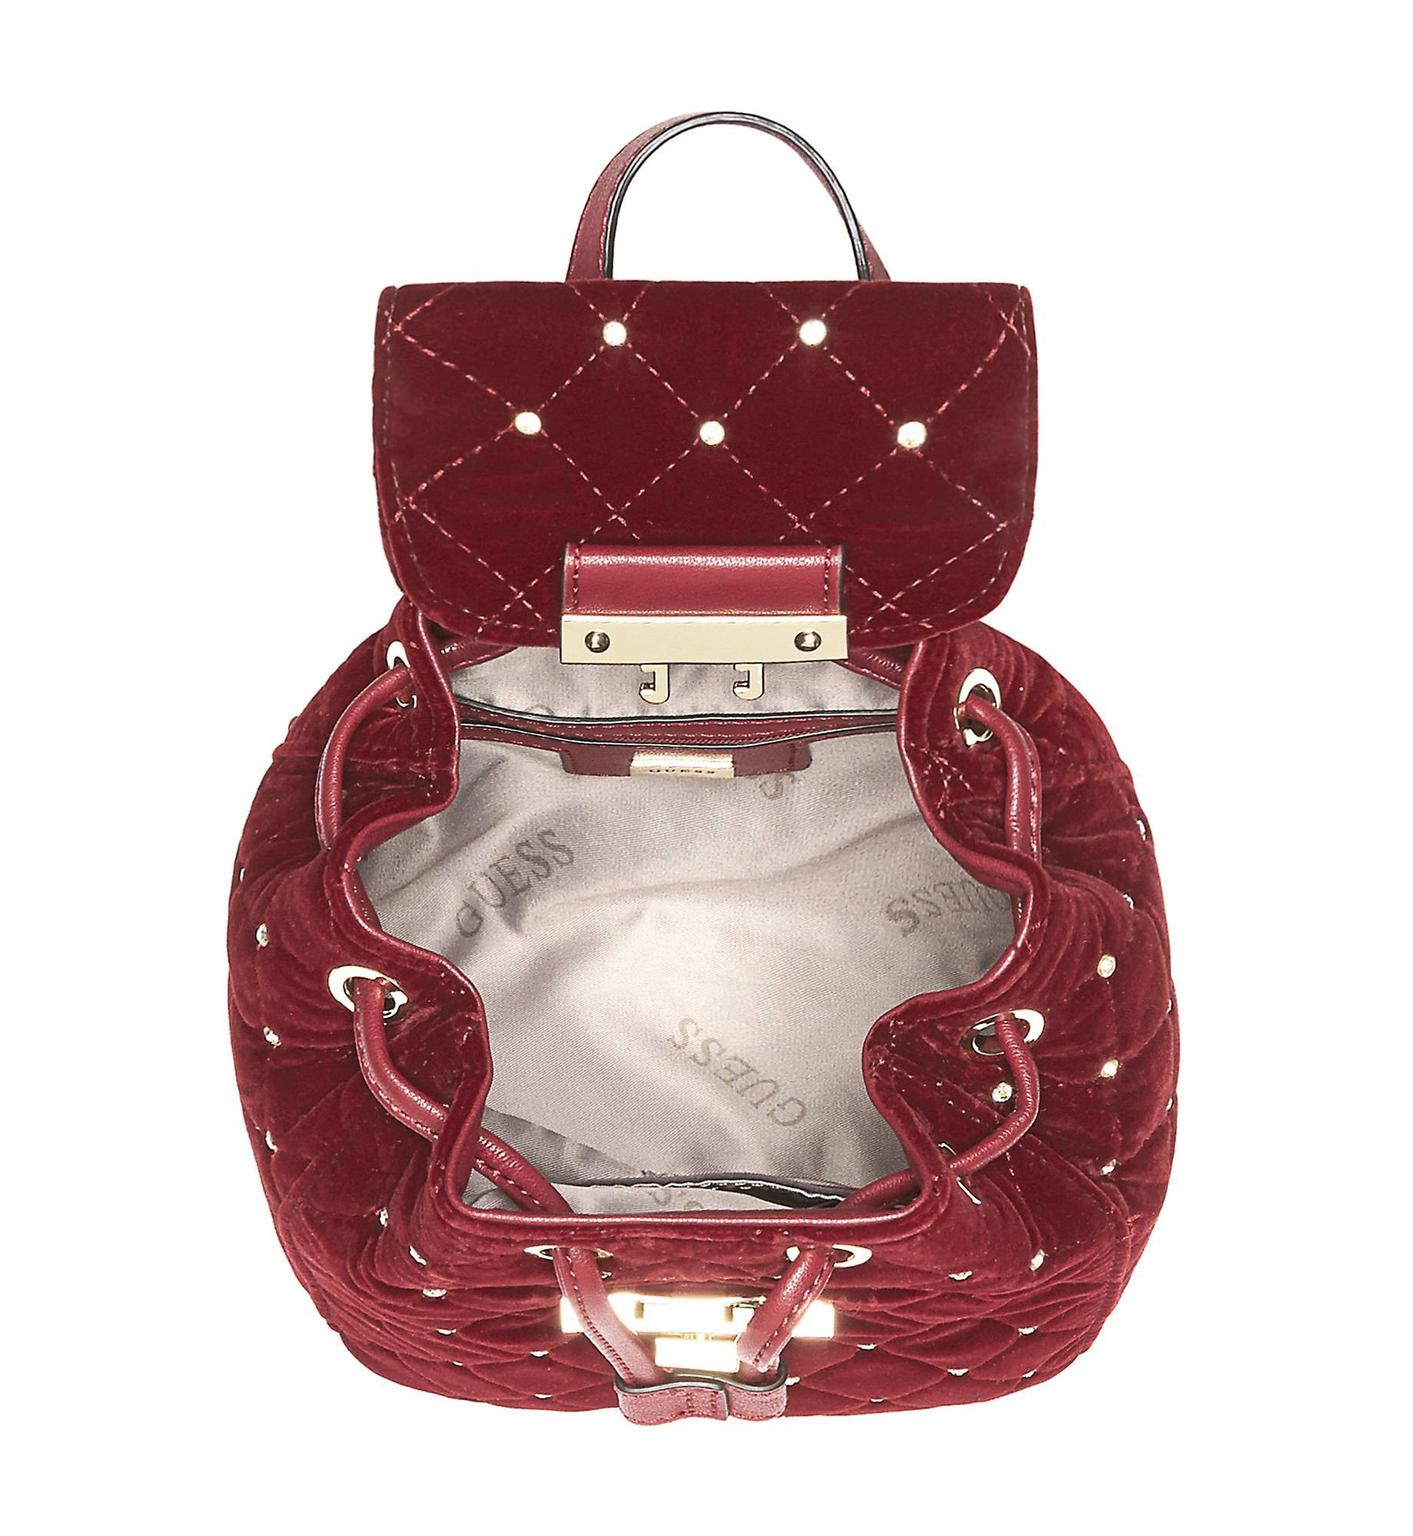 GUESS CORNELIA VELVET MINI BACKPACK BNWT RED